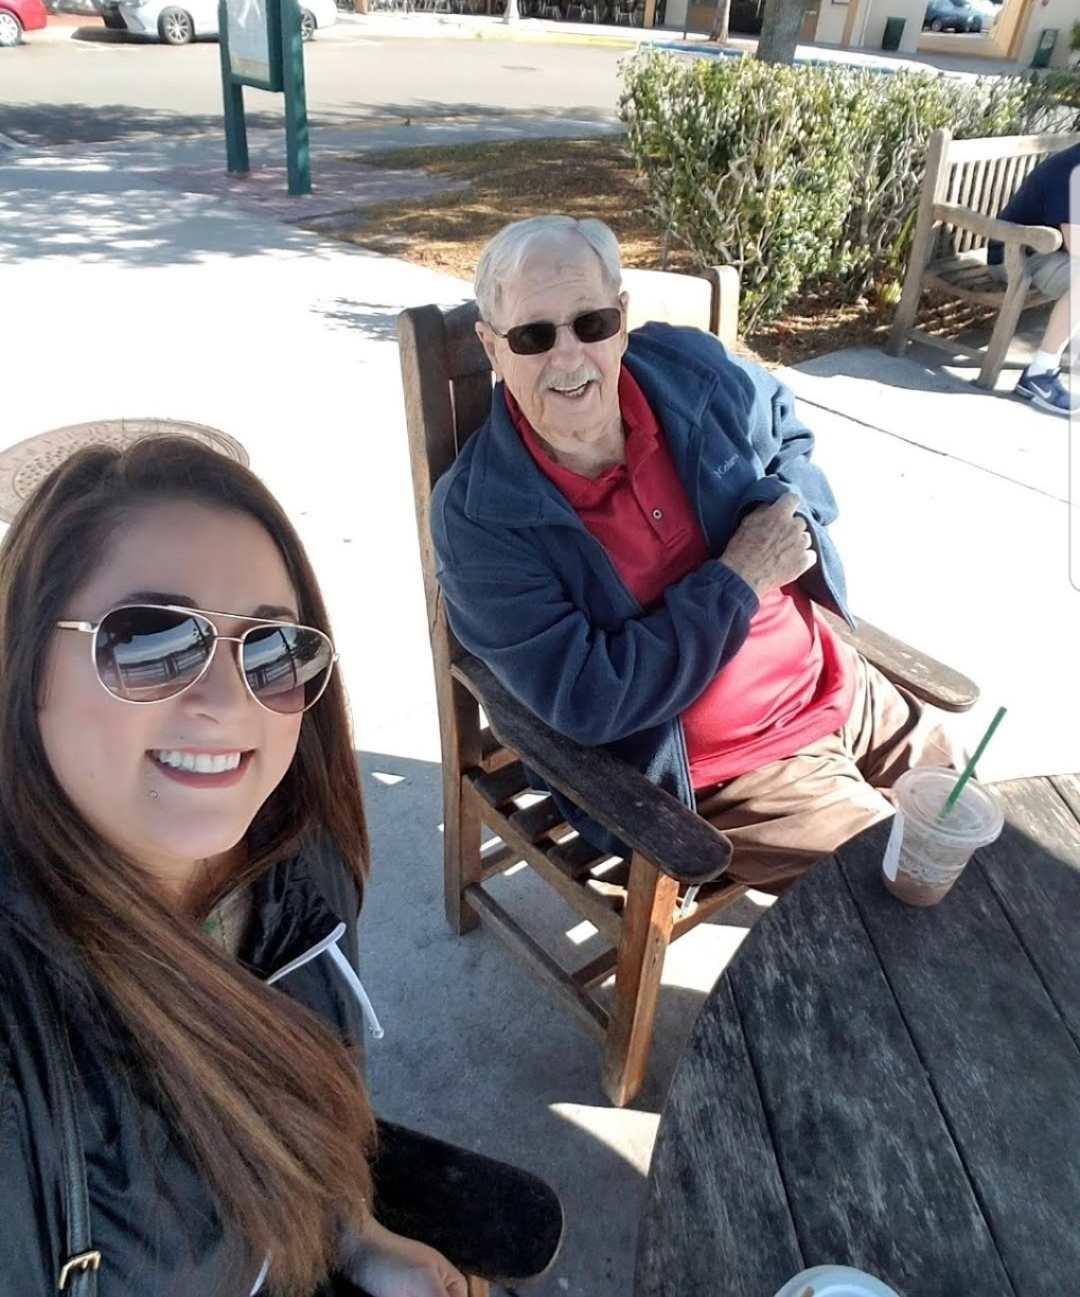 Having coffee hanging out with grandpa